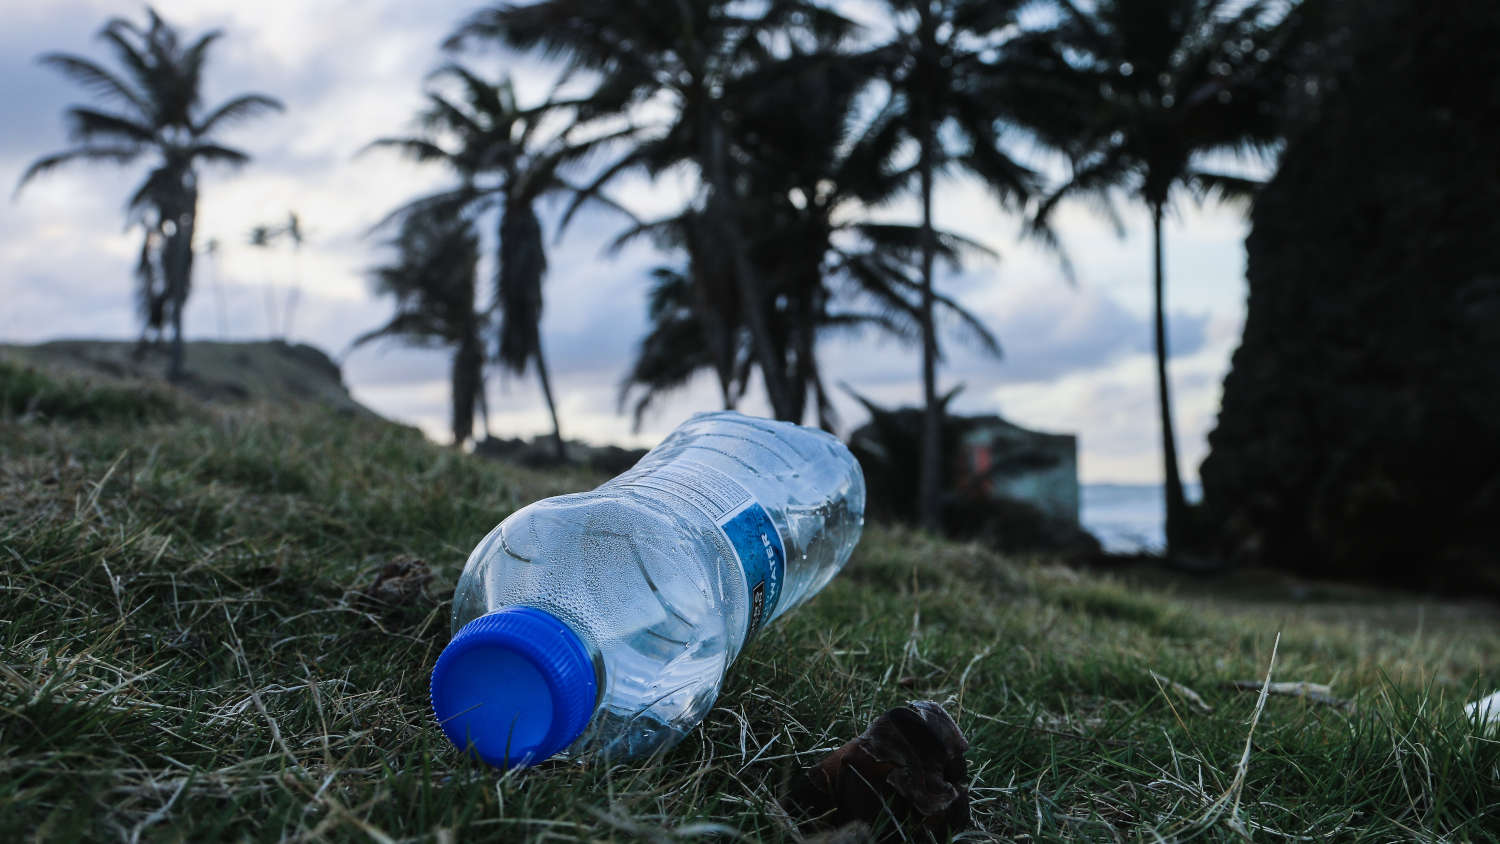 Why are plastic water bottles bad for the environment